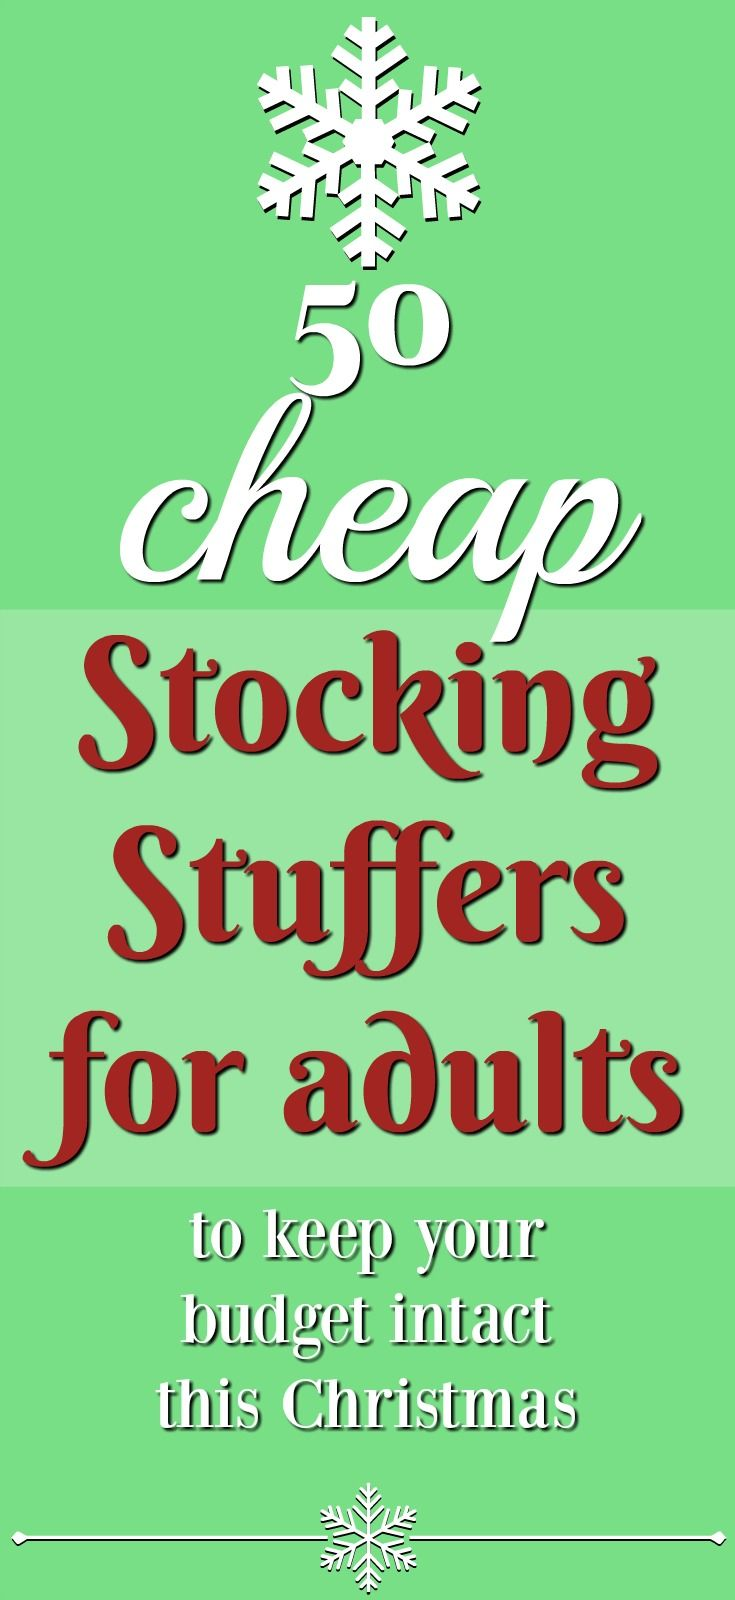 50 Cheap Stocking Stuffers Under 5 For Adults Gift Ideas